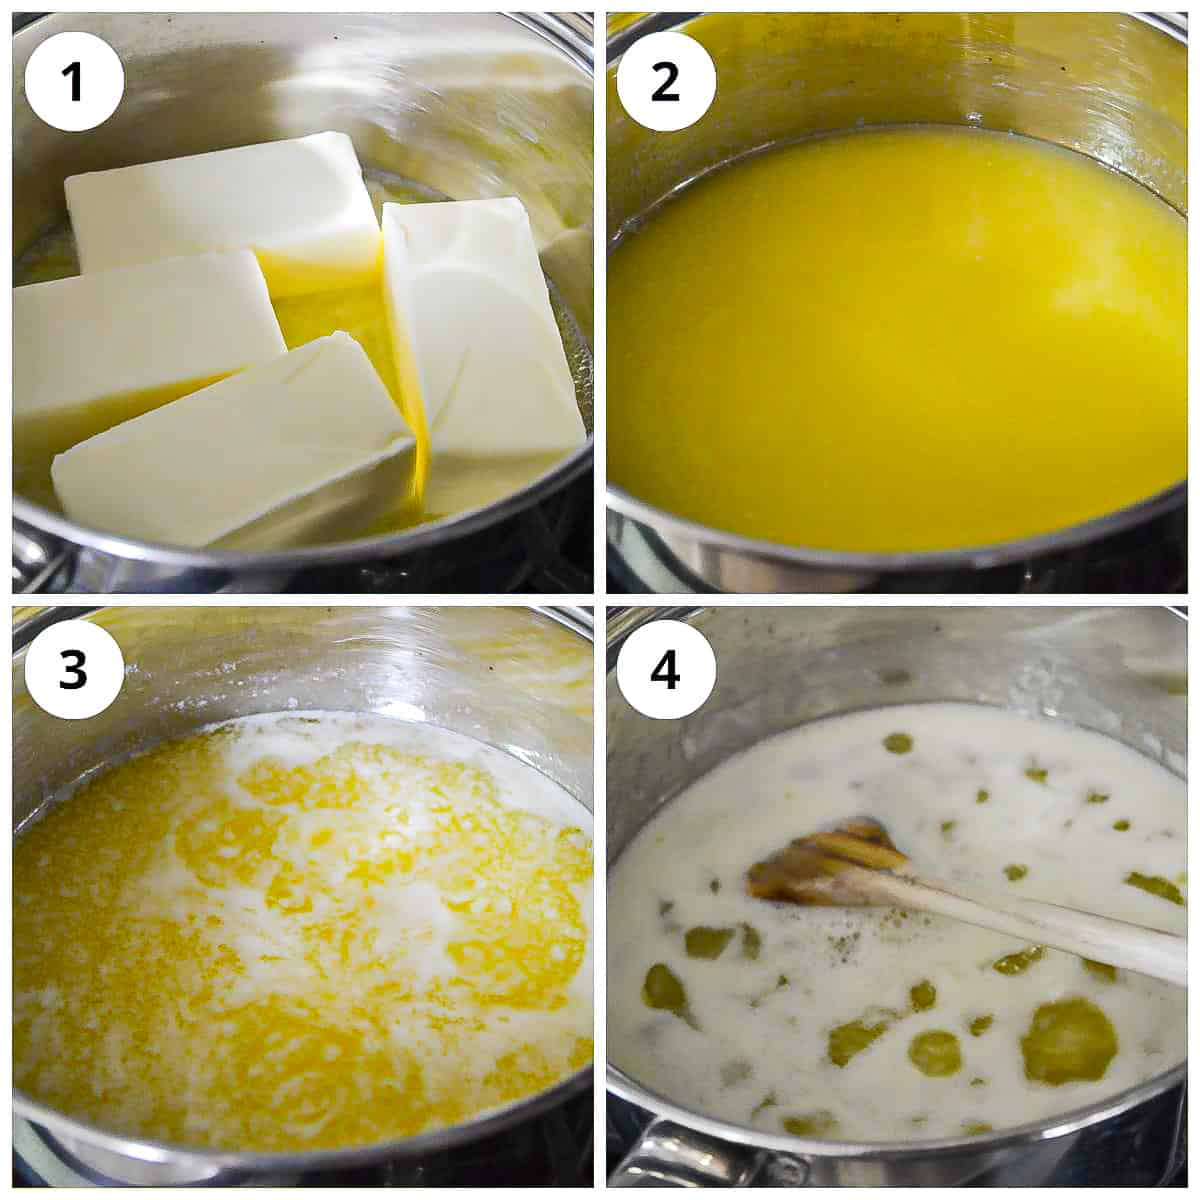 Steps for making ghee on stovetop by melting butter